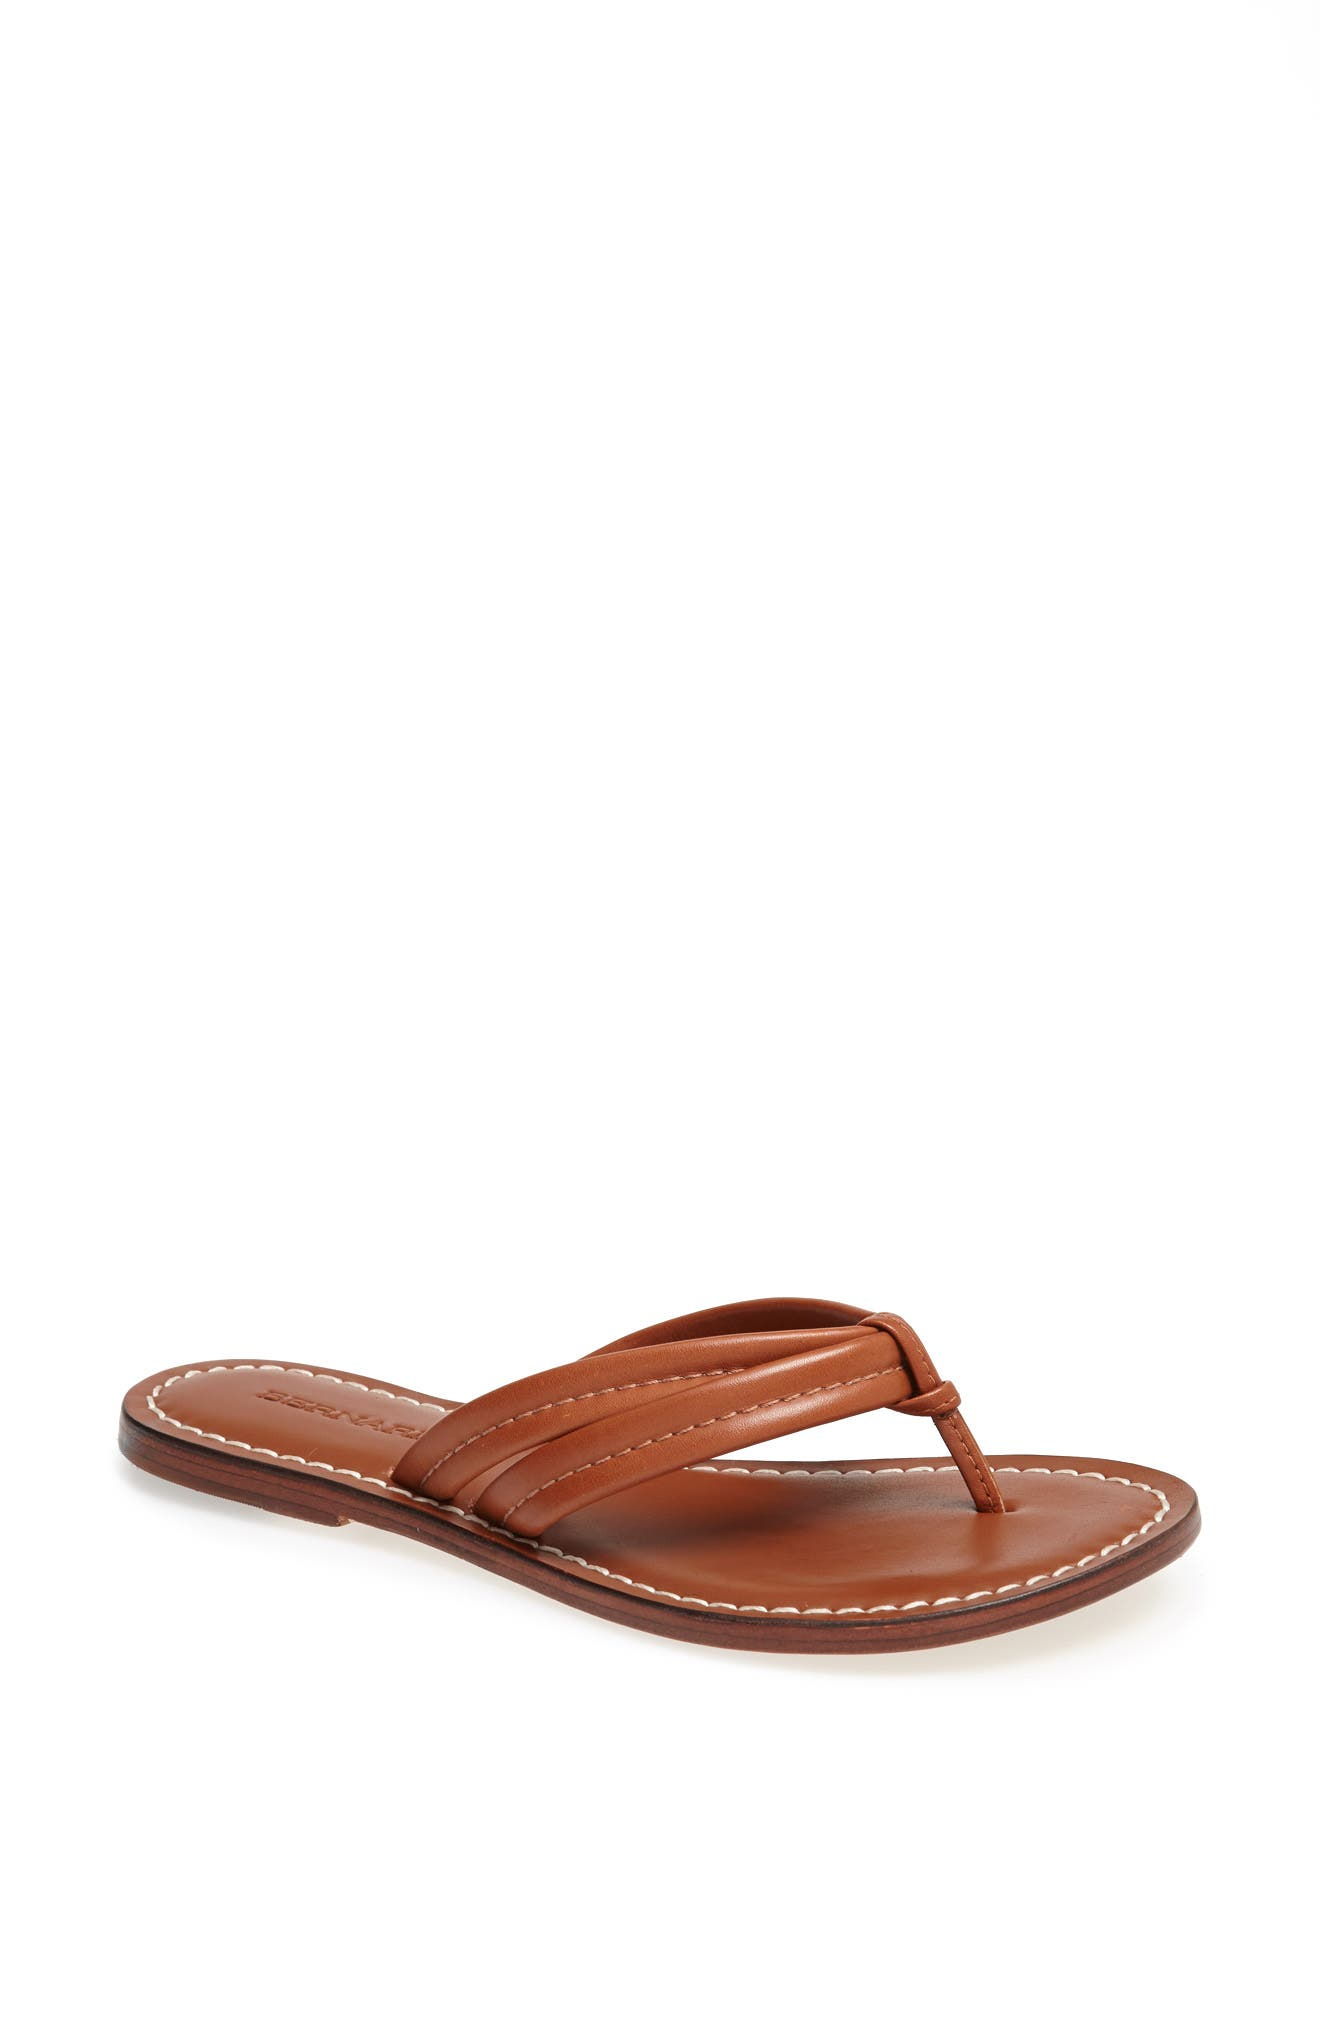 Alternate Image 1 Selected - Bernardo Miami Sandal